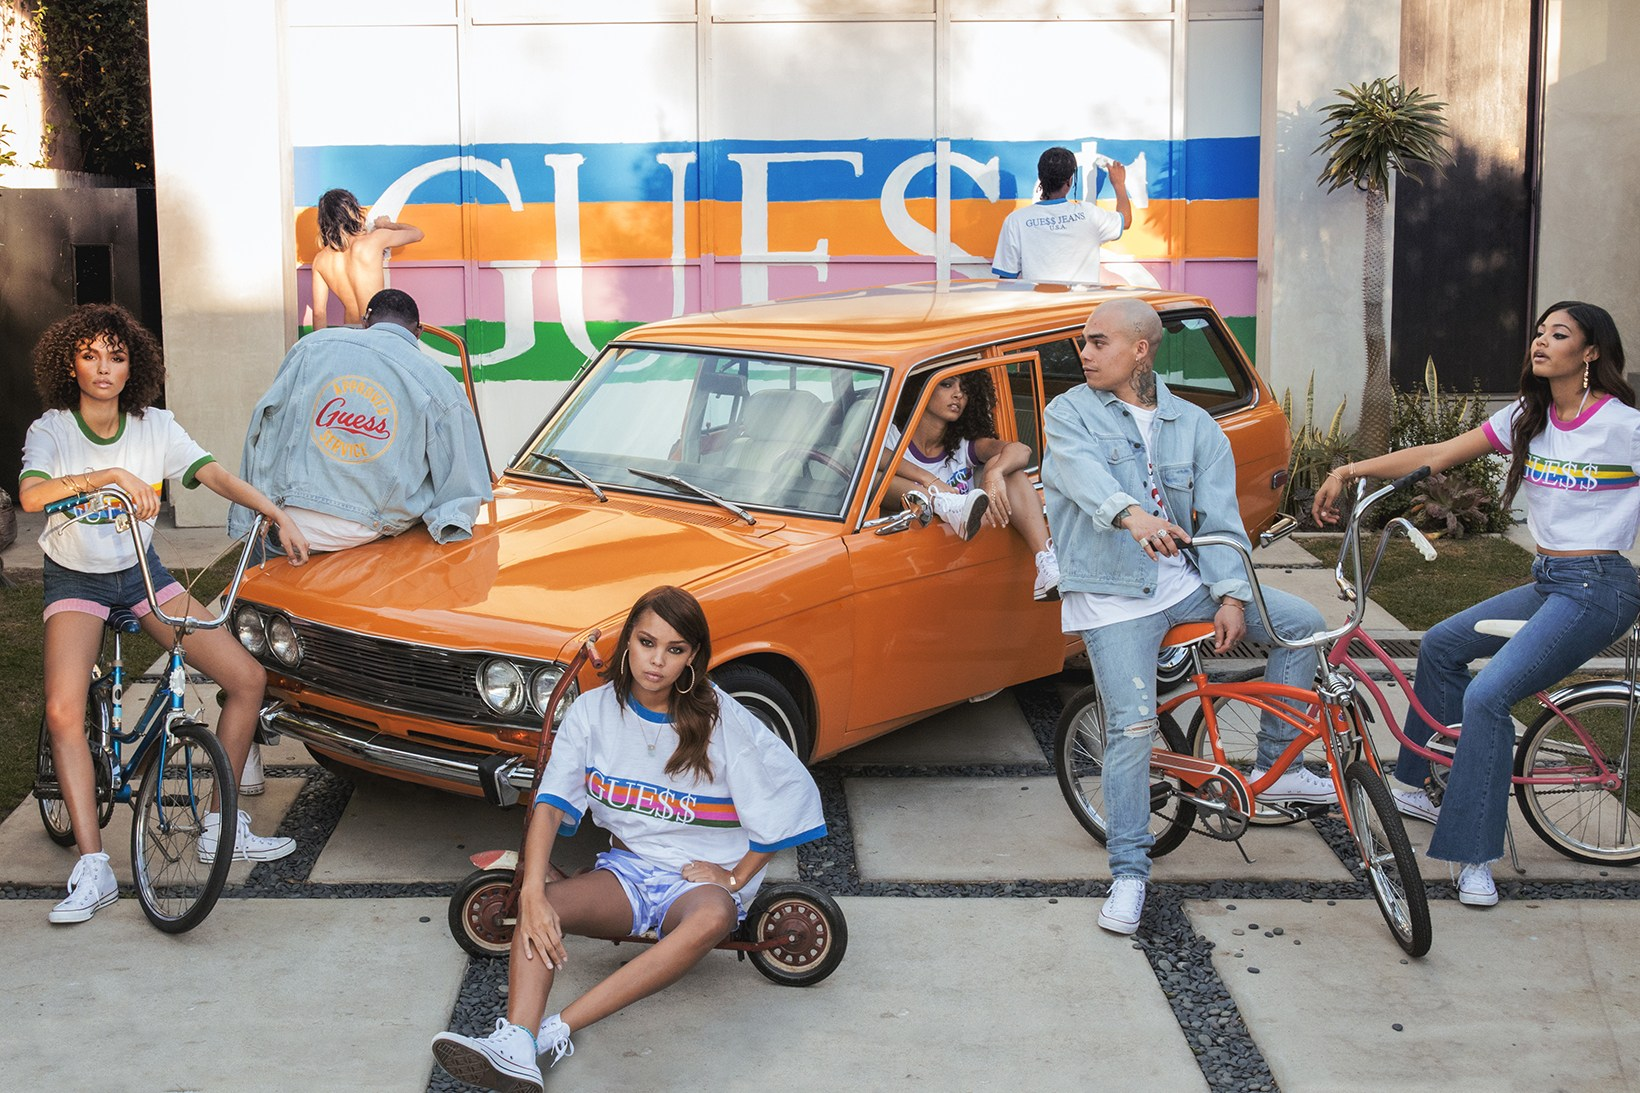 guess-originals-asap-rocky-2017-spring-capsule-2